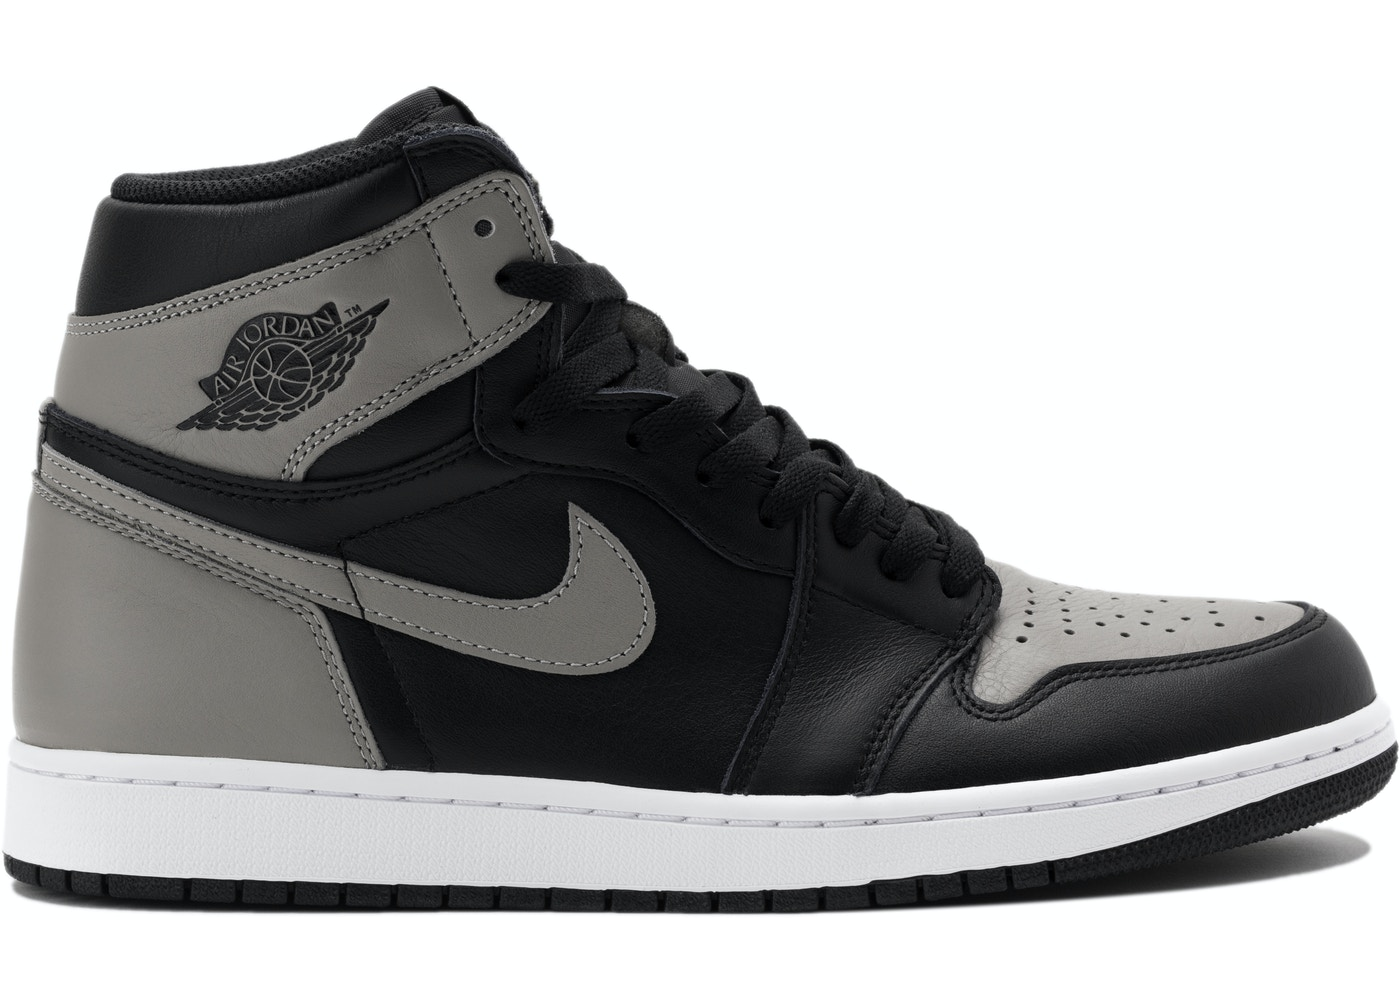 Jordan 1 Retro High Shadow (2018) - 555088-013 4948bc4c6